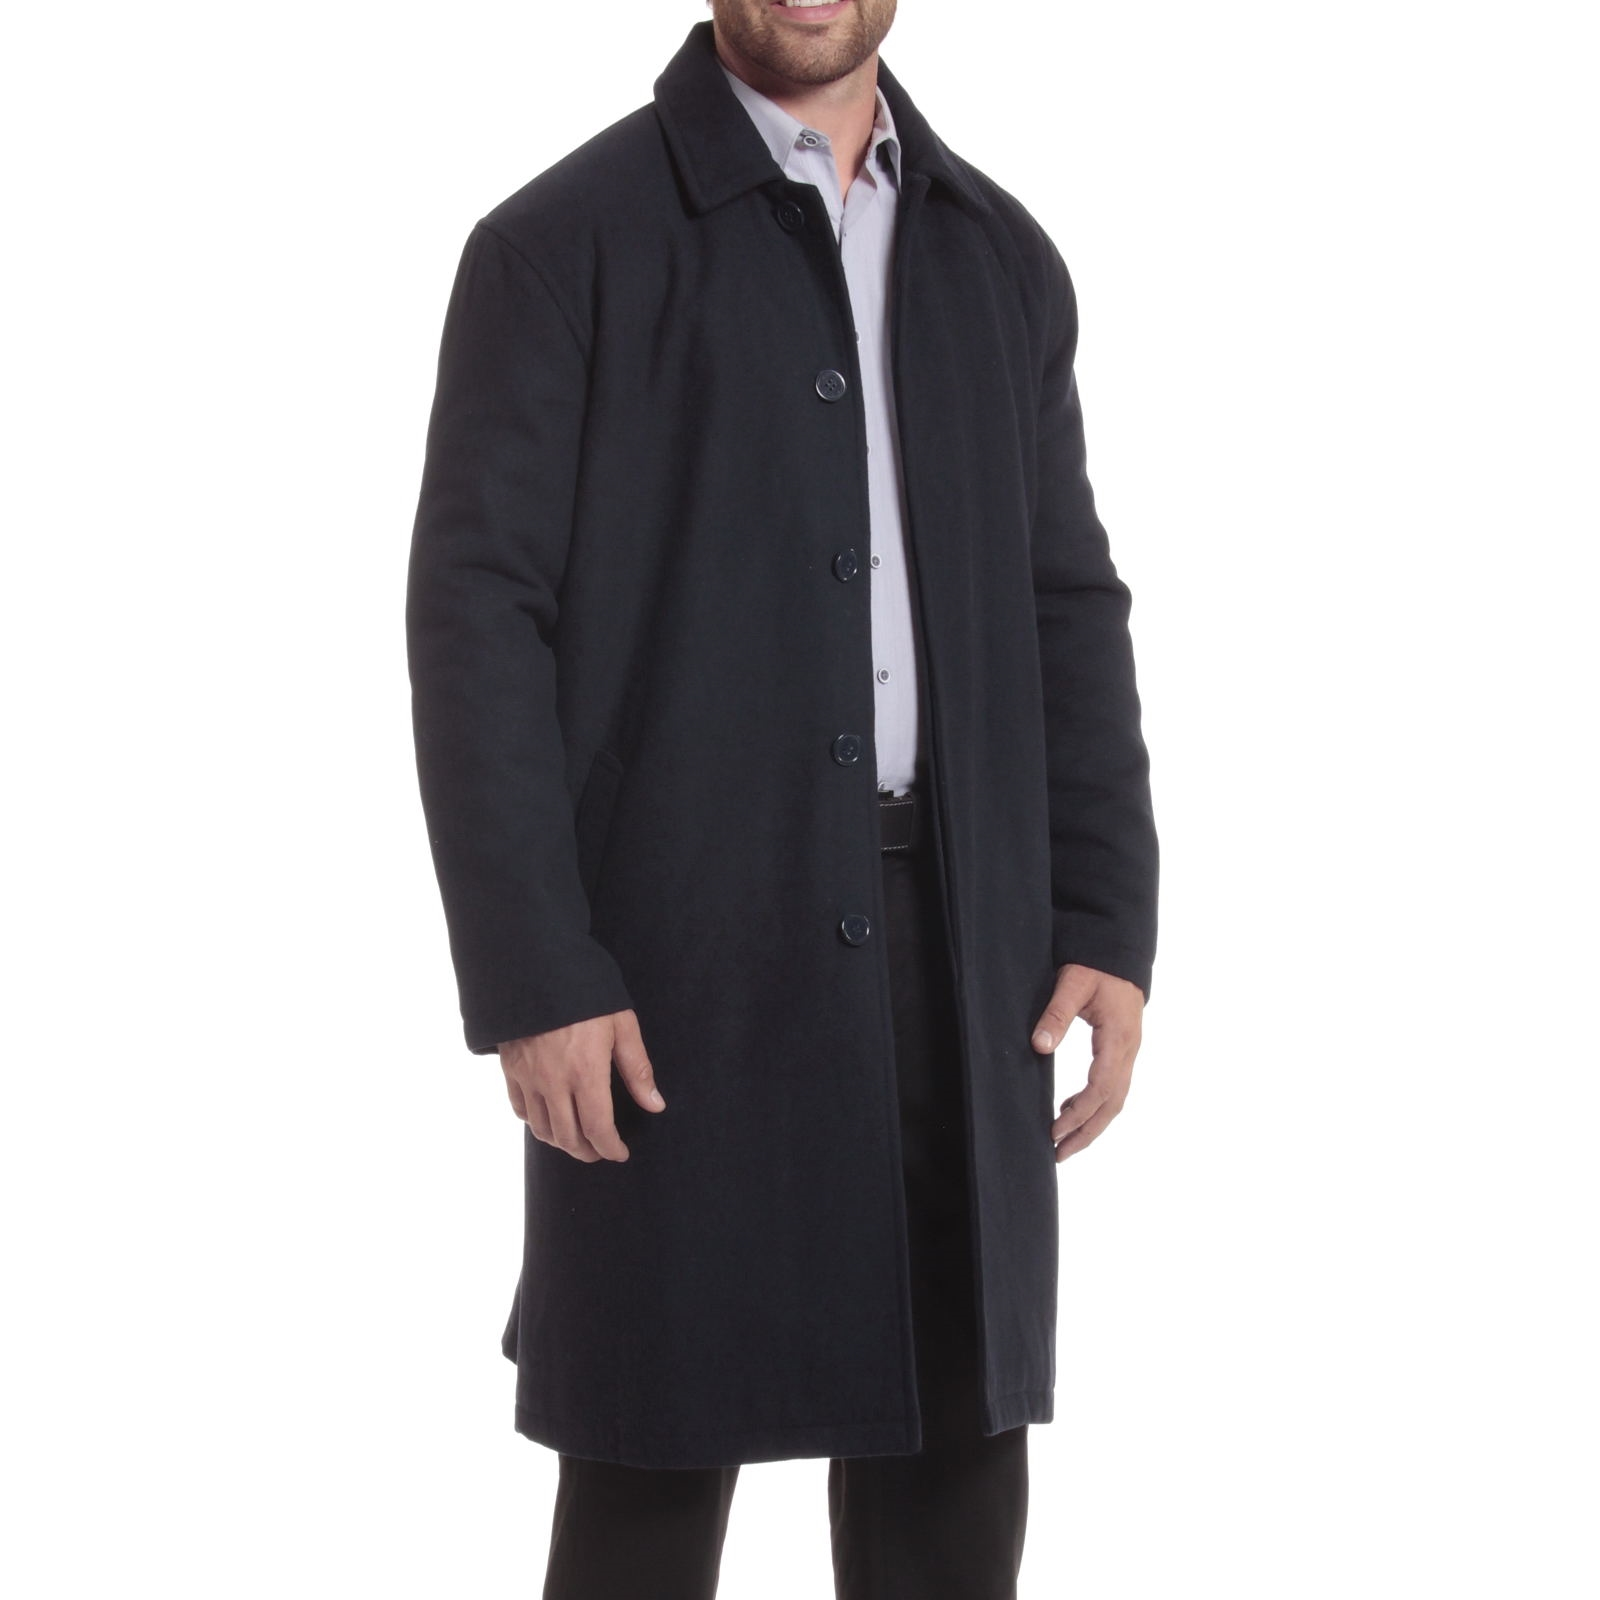 Alpine-Swiss-Mens-Zach-Knee-Length-Jacket-Top-Coat-Trench-Wool-Blend-Overcoat thumbnail 49